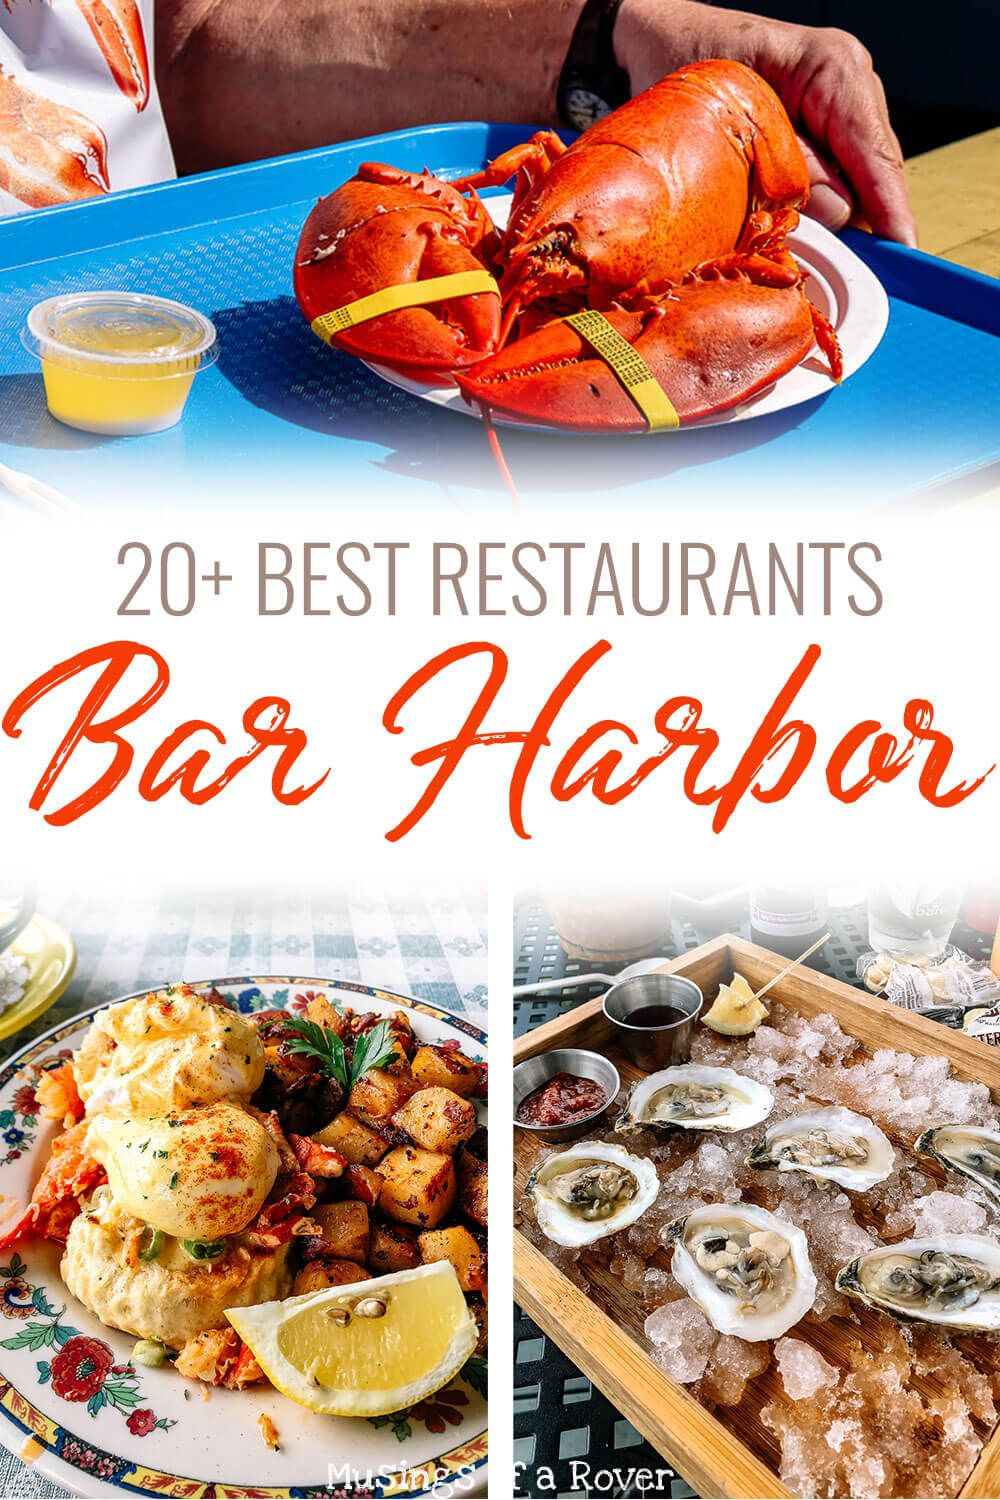 If you're trying to figure out where to eat in Bar Harbor, then you're in luck! This article contains 20+ of the best restaurants in Bar Harbor, on Mount Desert Island, and near Acadia National Park. Includes breakfast spots, lobster pounds, seafood restaurants, and a few dessert and ice cream shops. Add these to your Bar Harbor itinerary so you know the best places to eat!